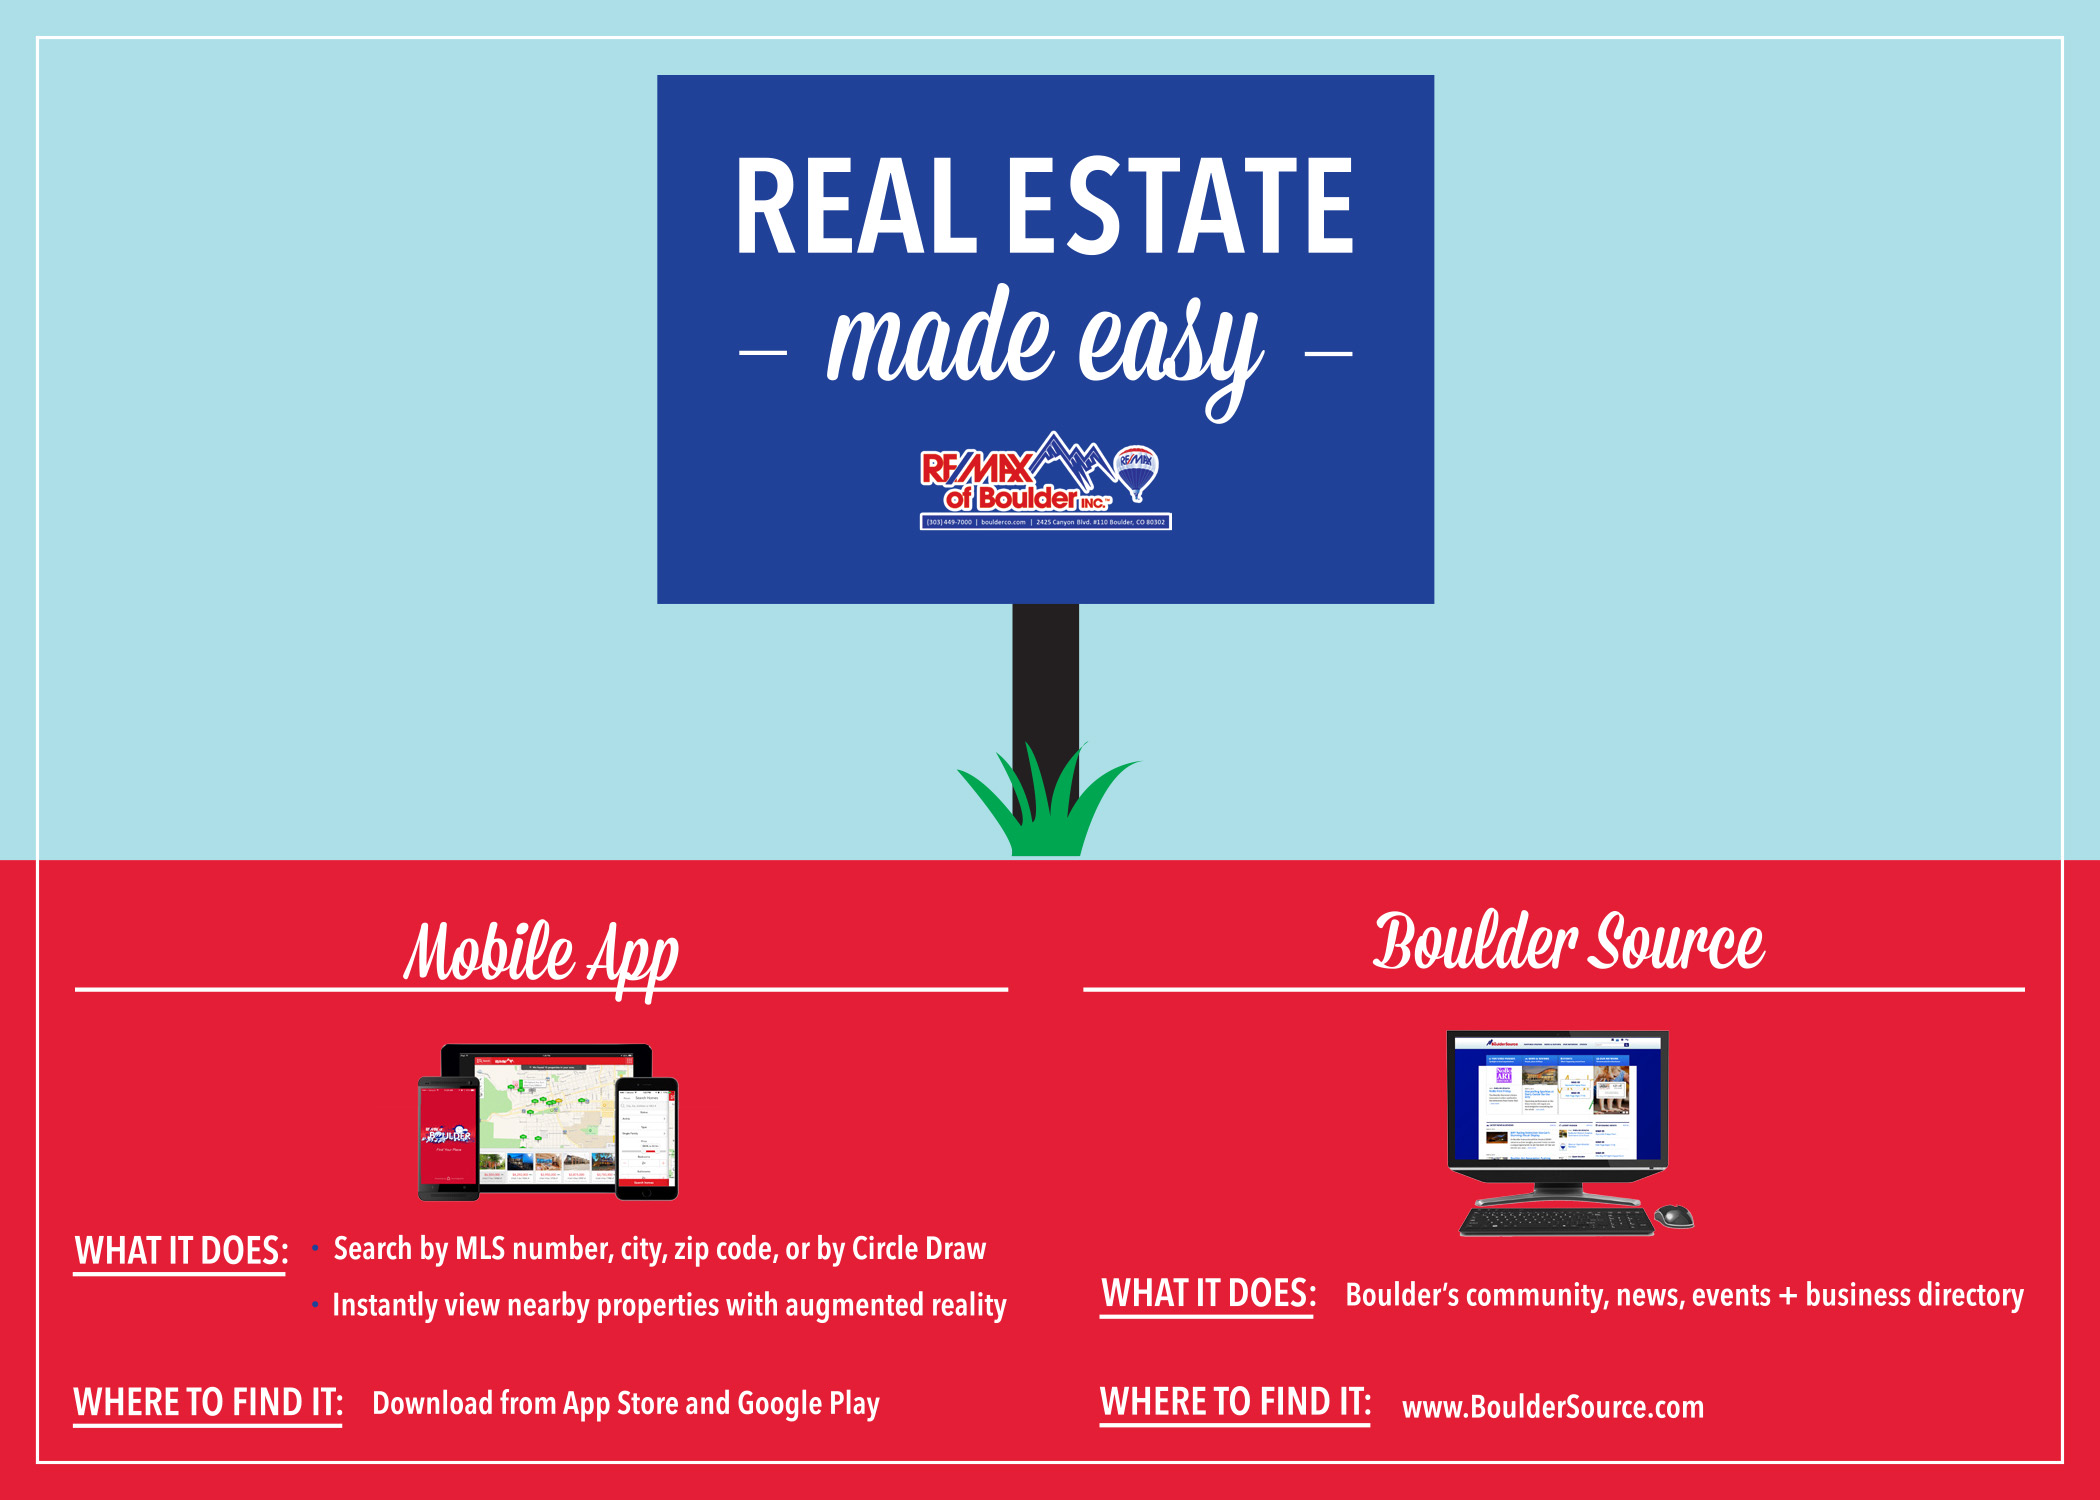 Real Estate Marketing Adison Young